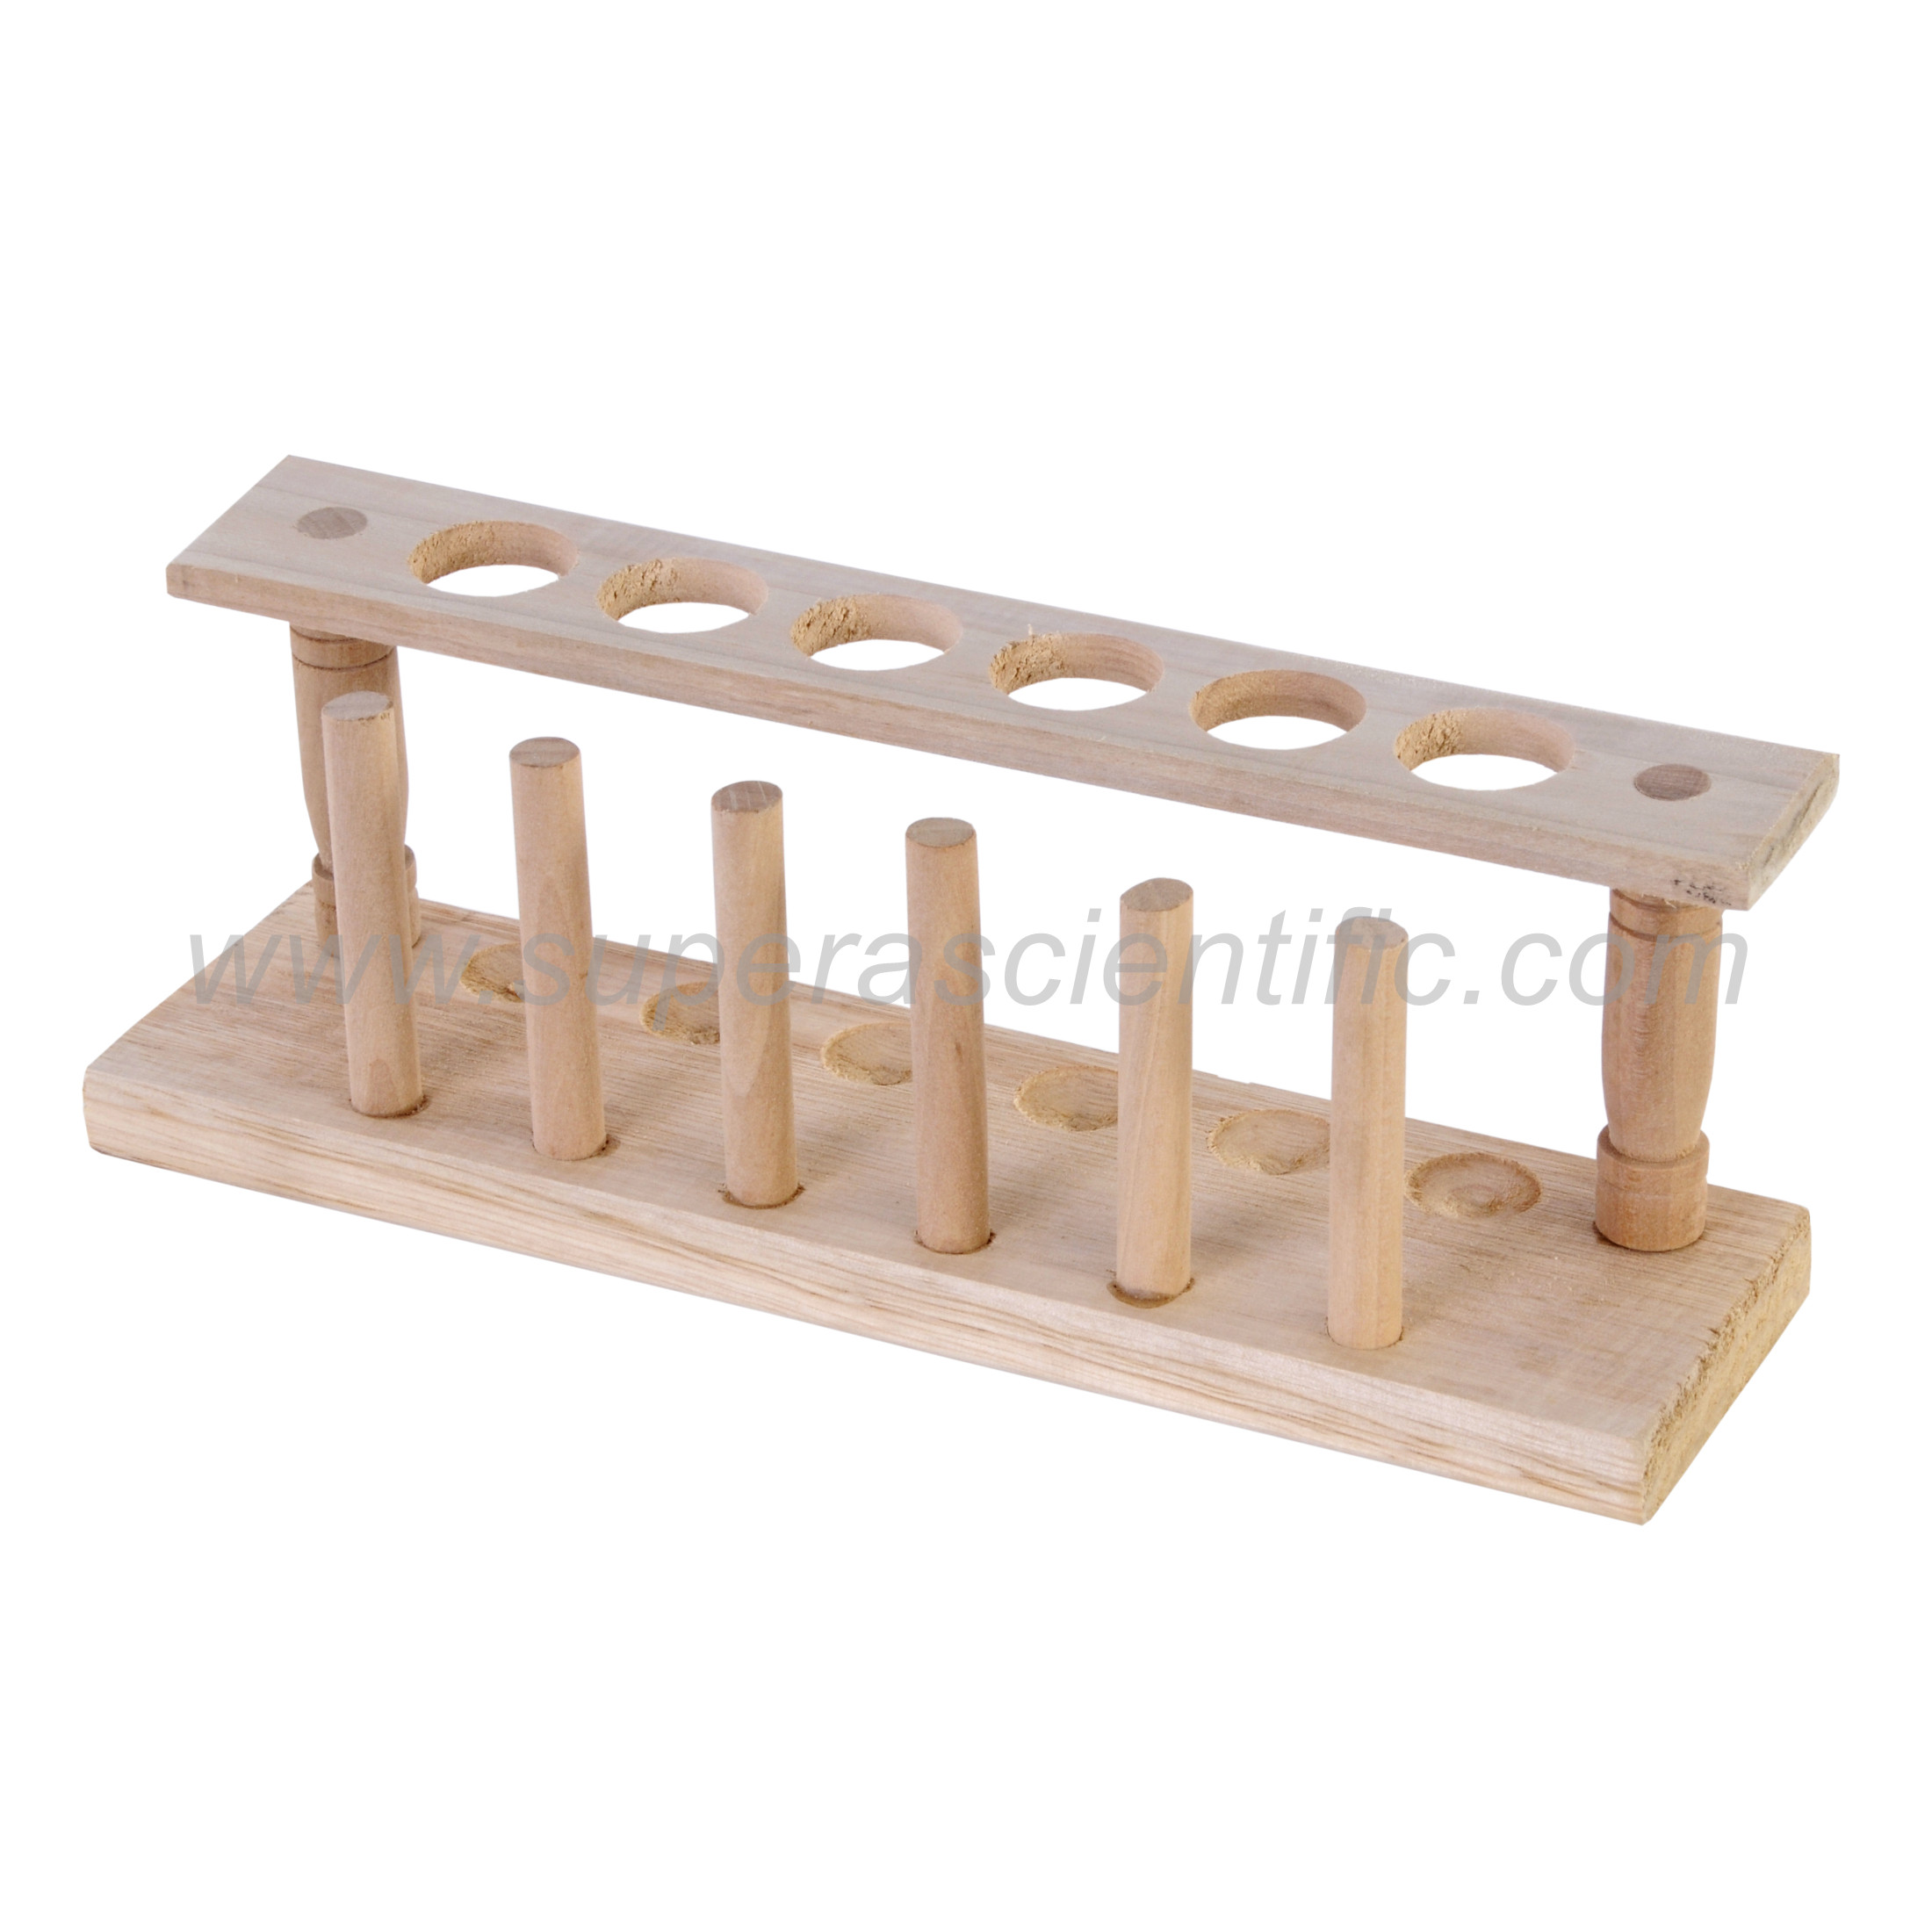 1406 Wooden Test Tube Rack, 6 Tubes, 1 Row 24mmD,